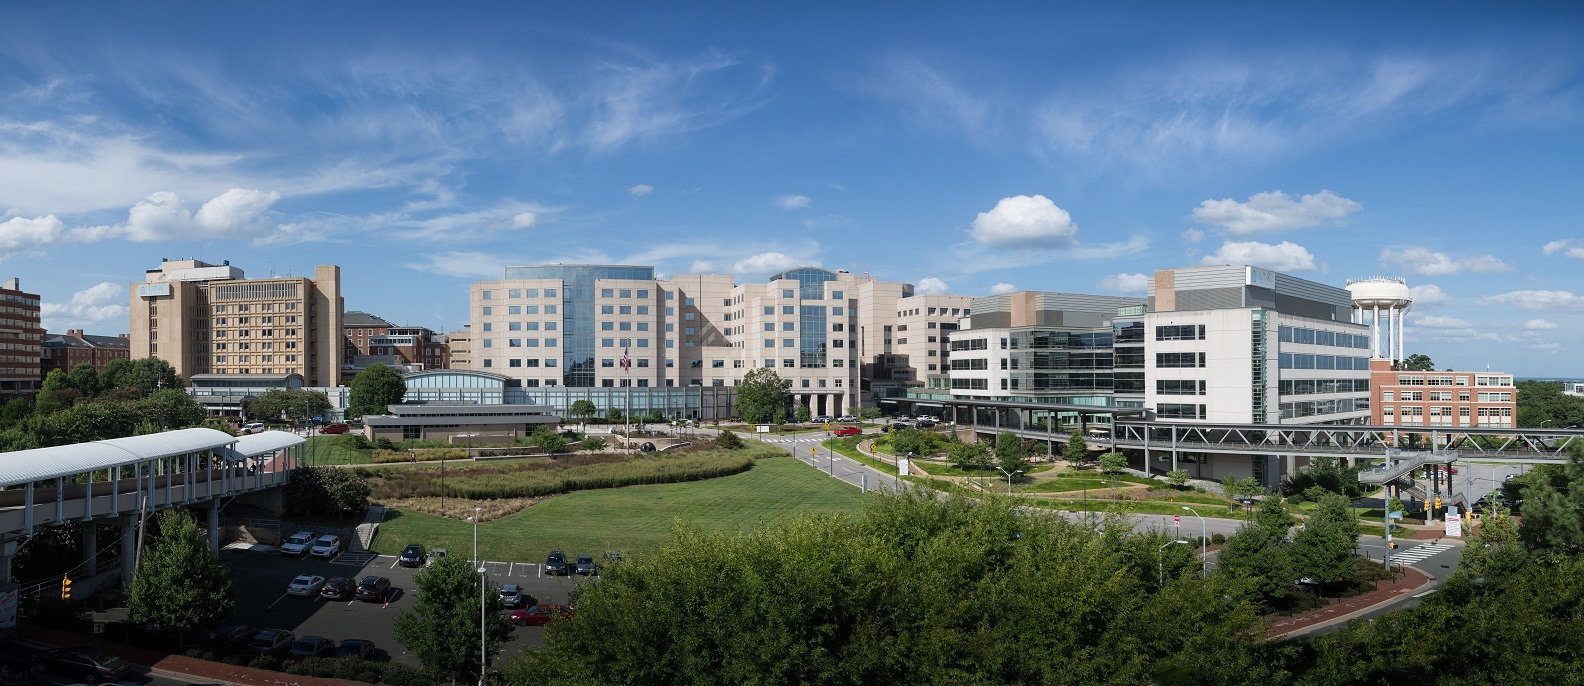 UNC Health Care Hospitals Nationally Ranked by US News & World Report